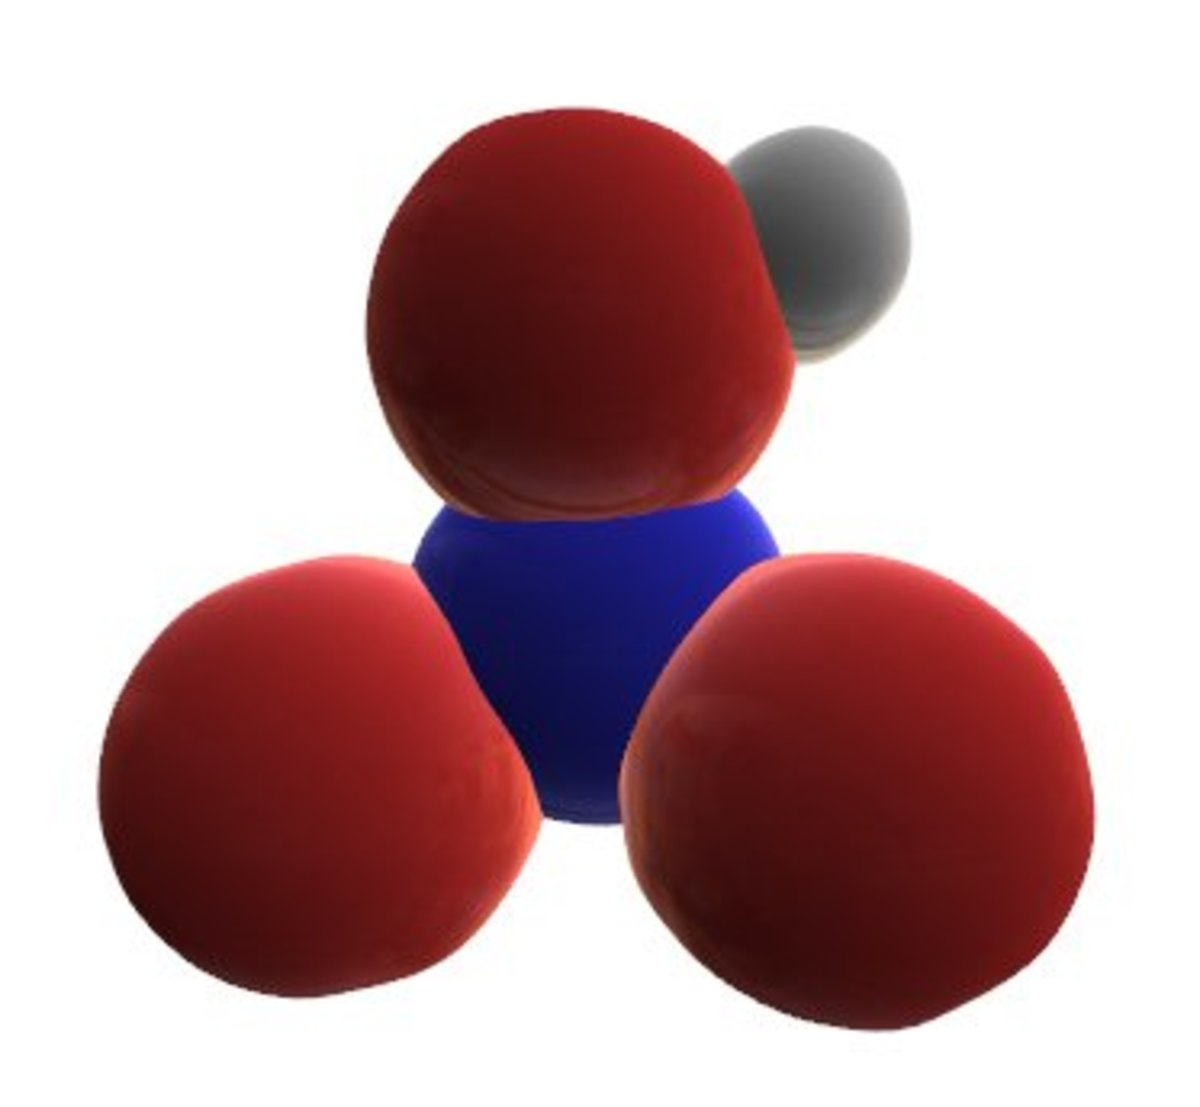 3D molecular model of nitric acid